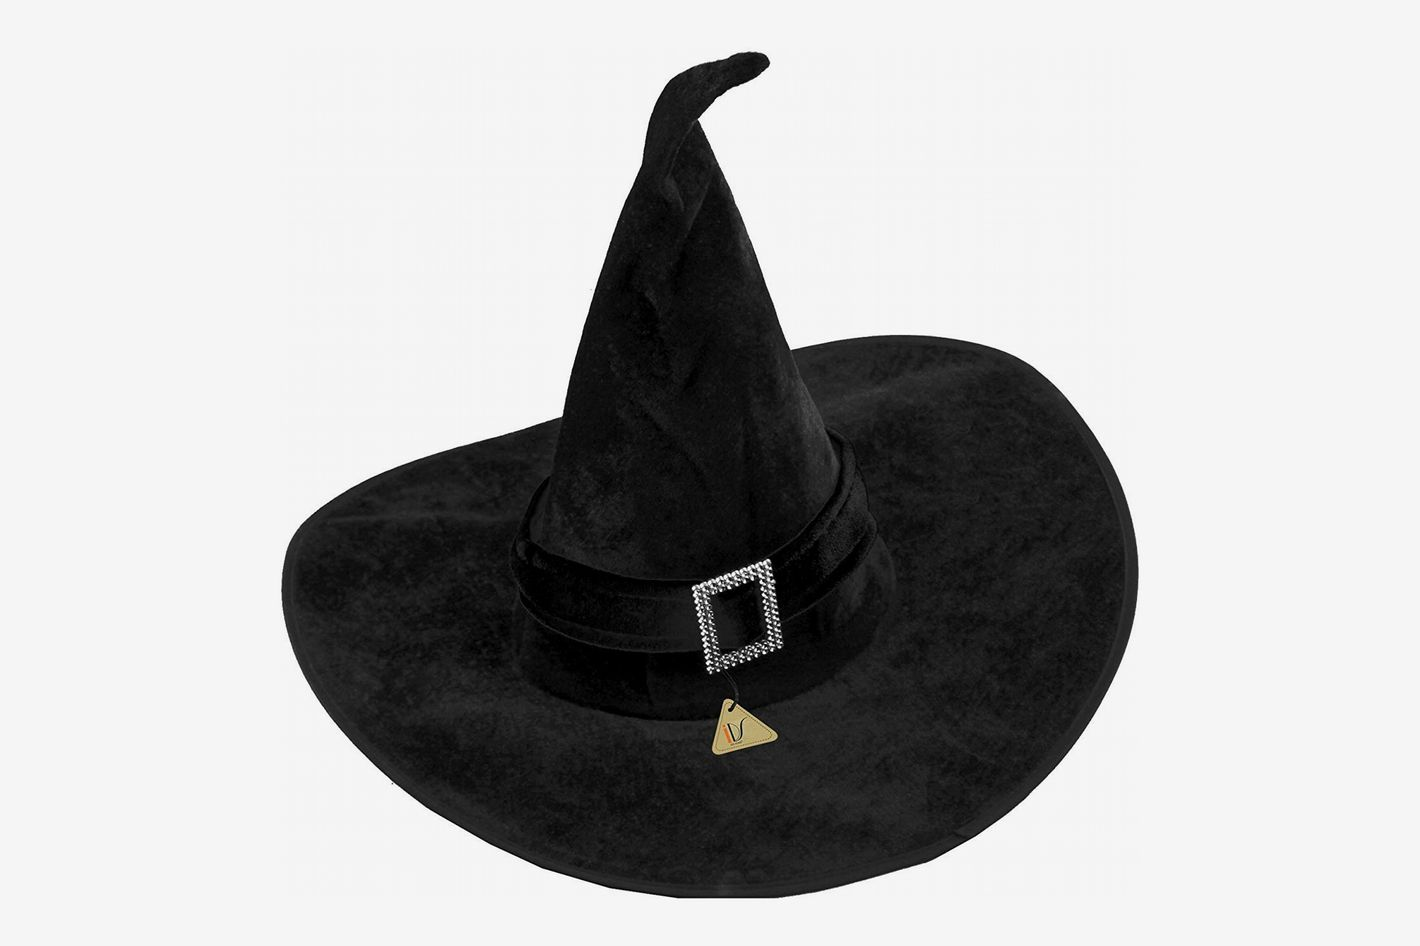 619c68930de The Best Witch Hats for Halloween